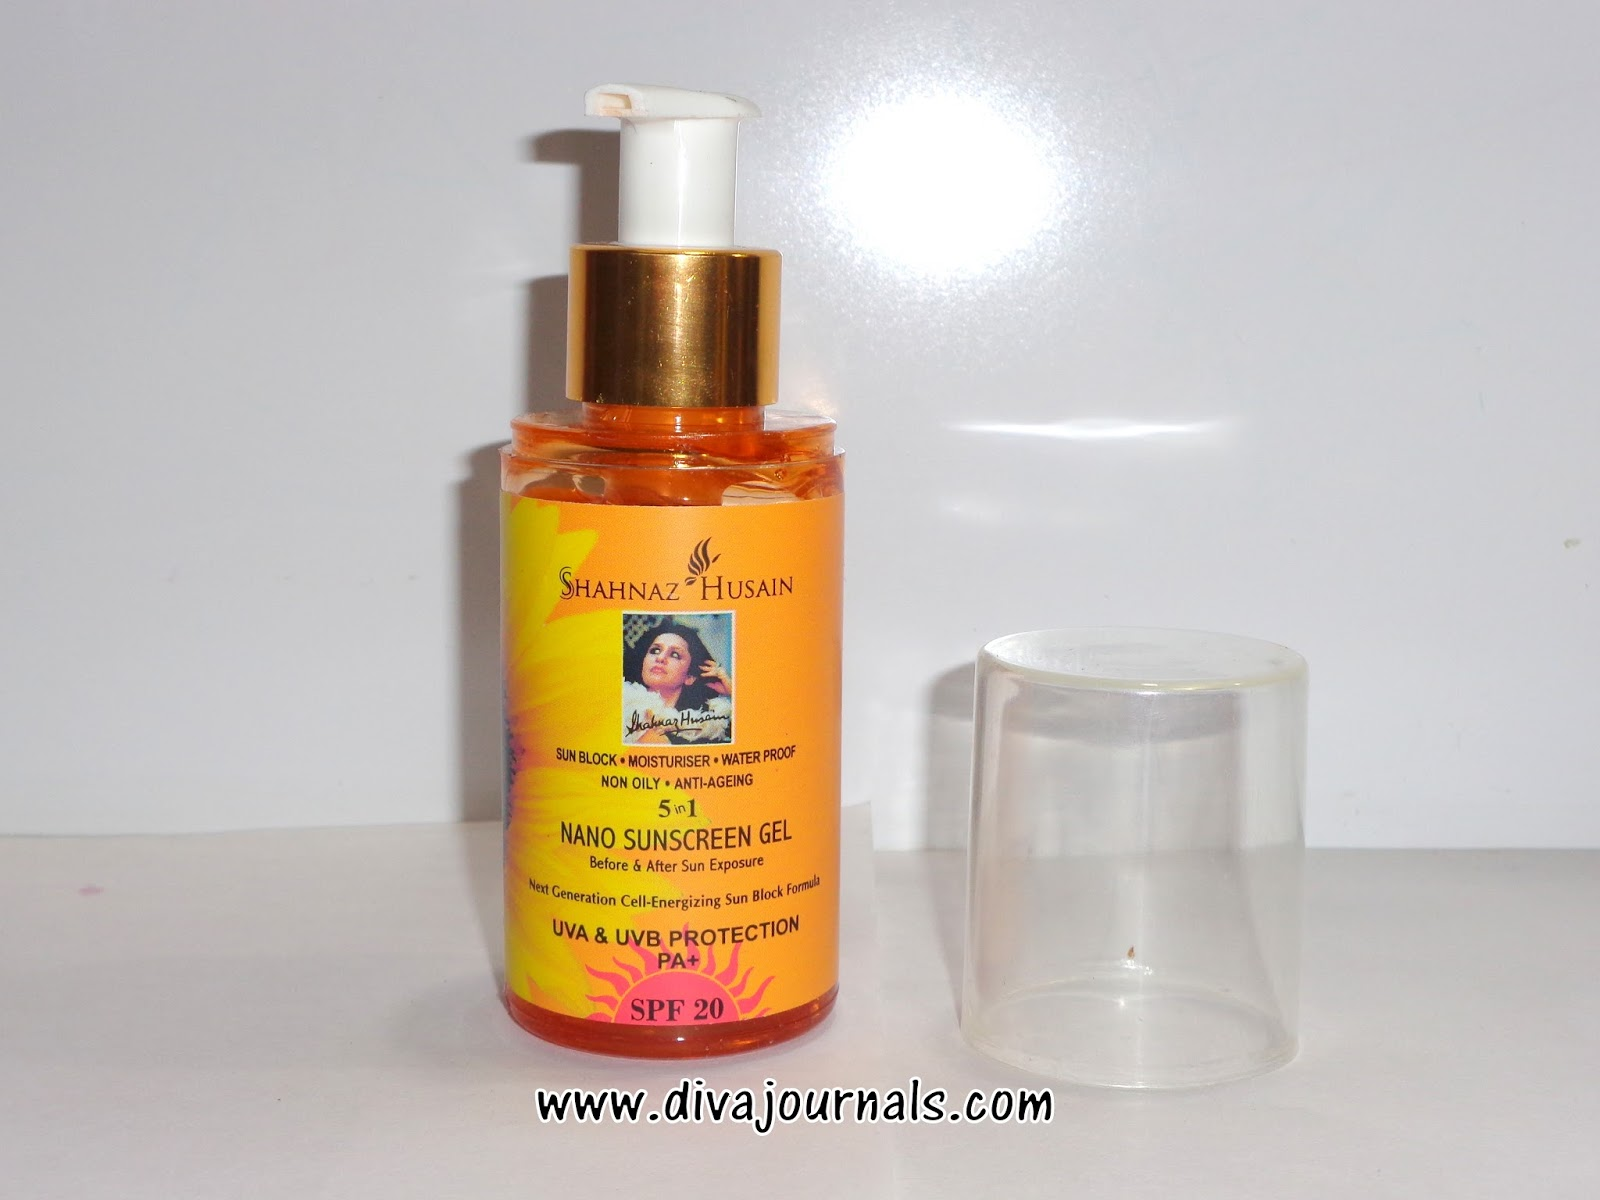 Shahnaz Husain Nano Sunscreen Gel SPF 20 Review